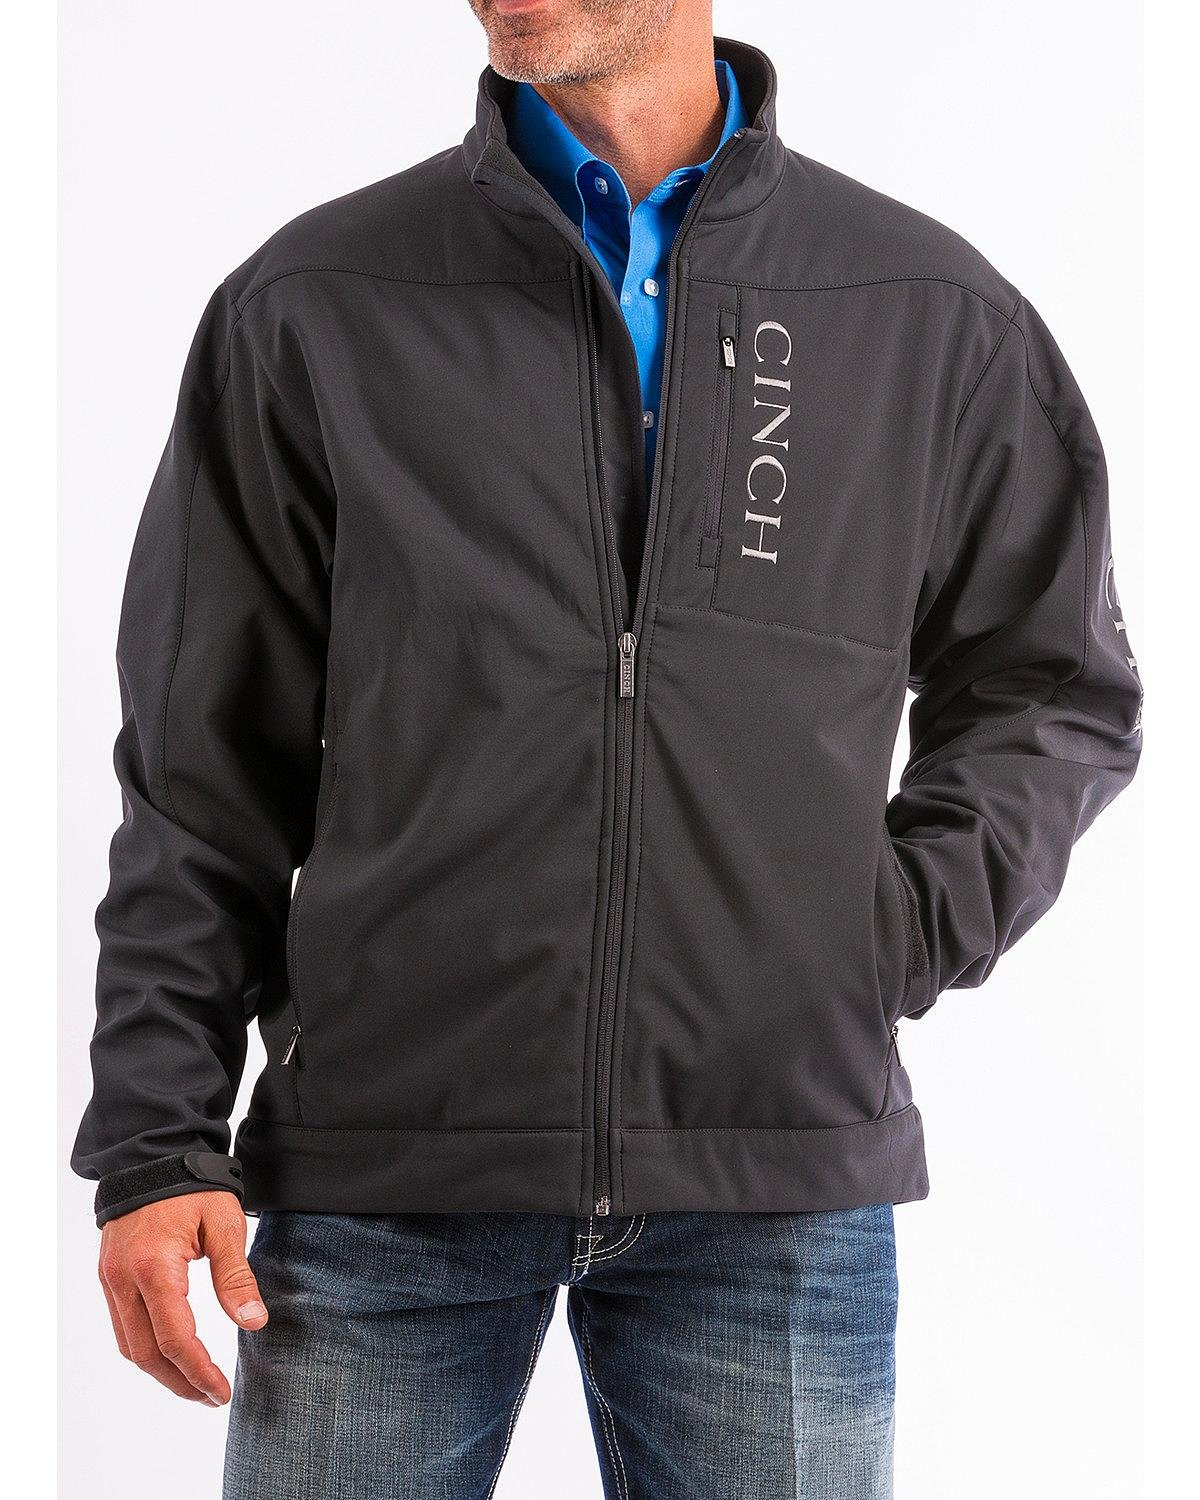 Cinch Men's Concealed Carry Bonded Jacket Black Large by Cinch